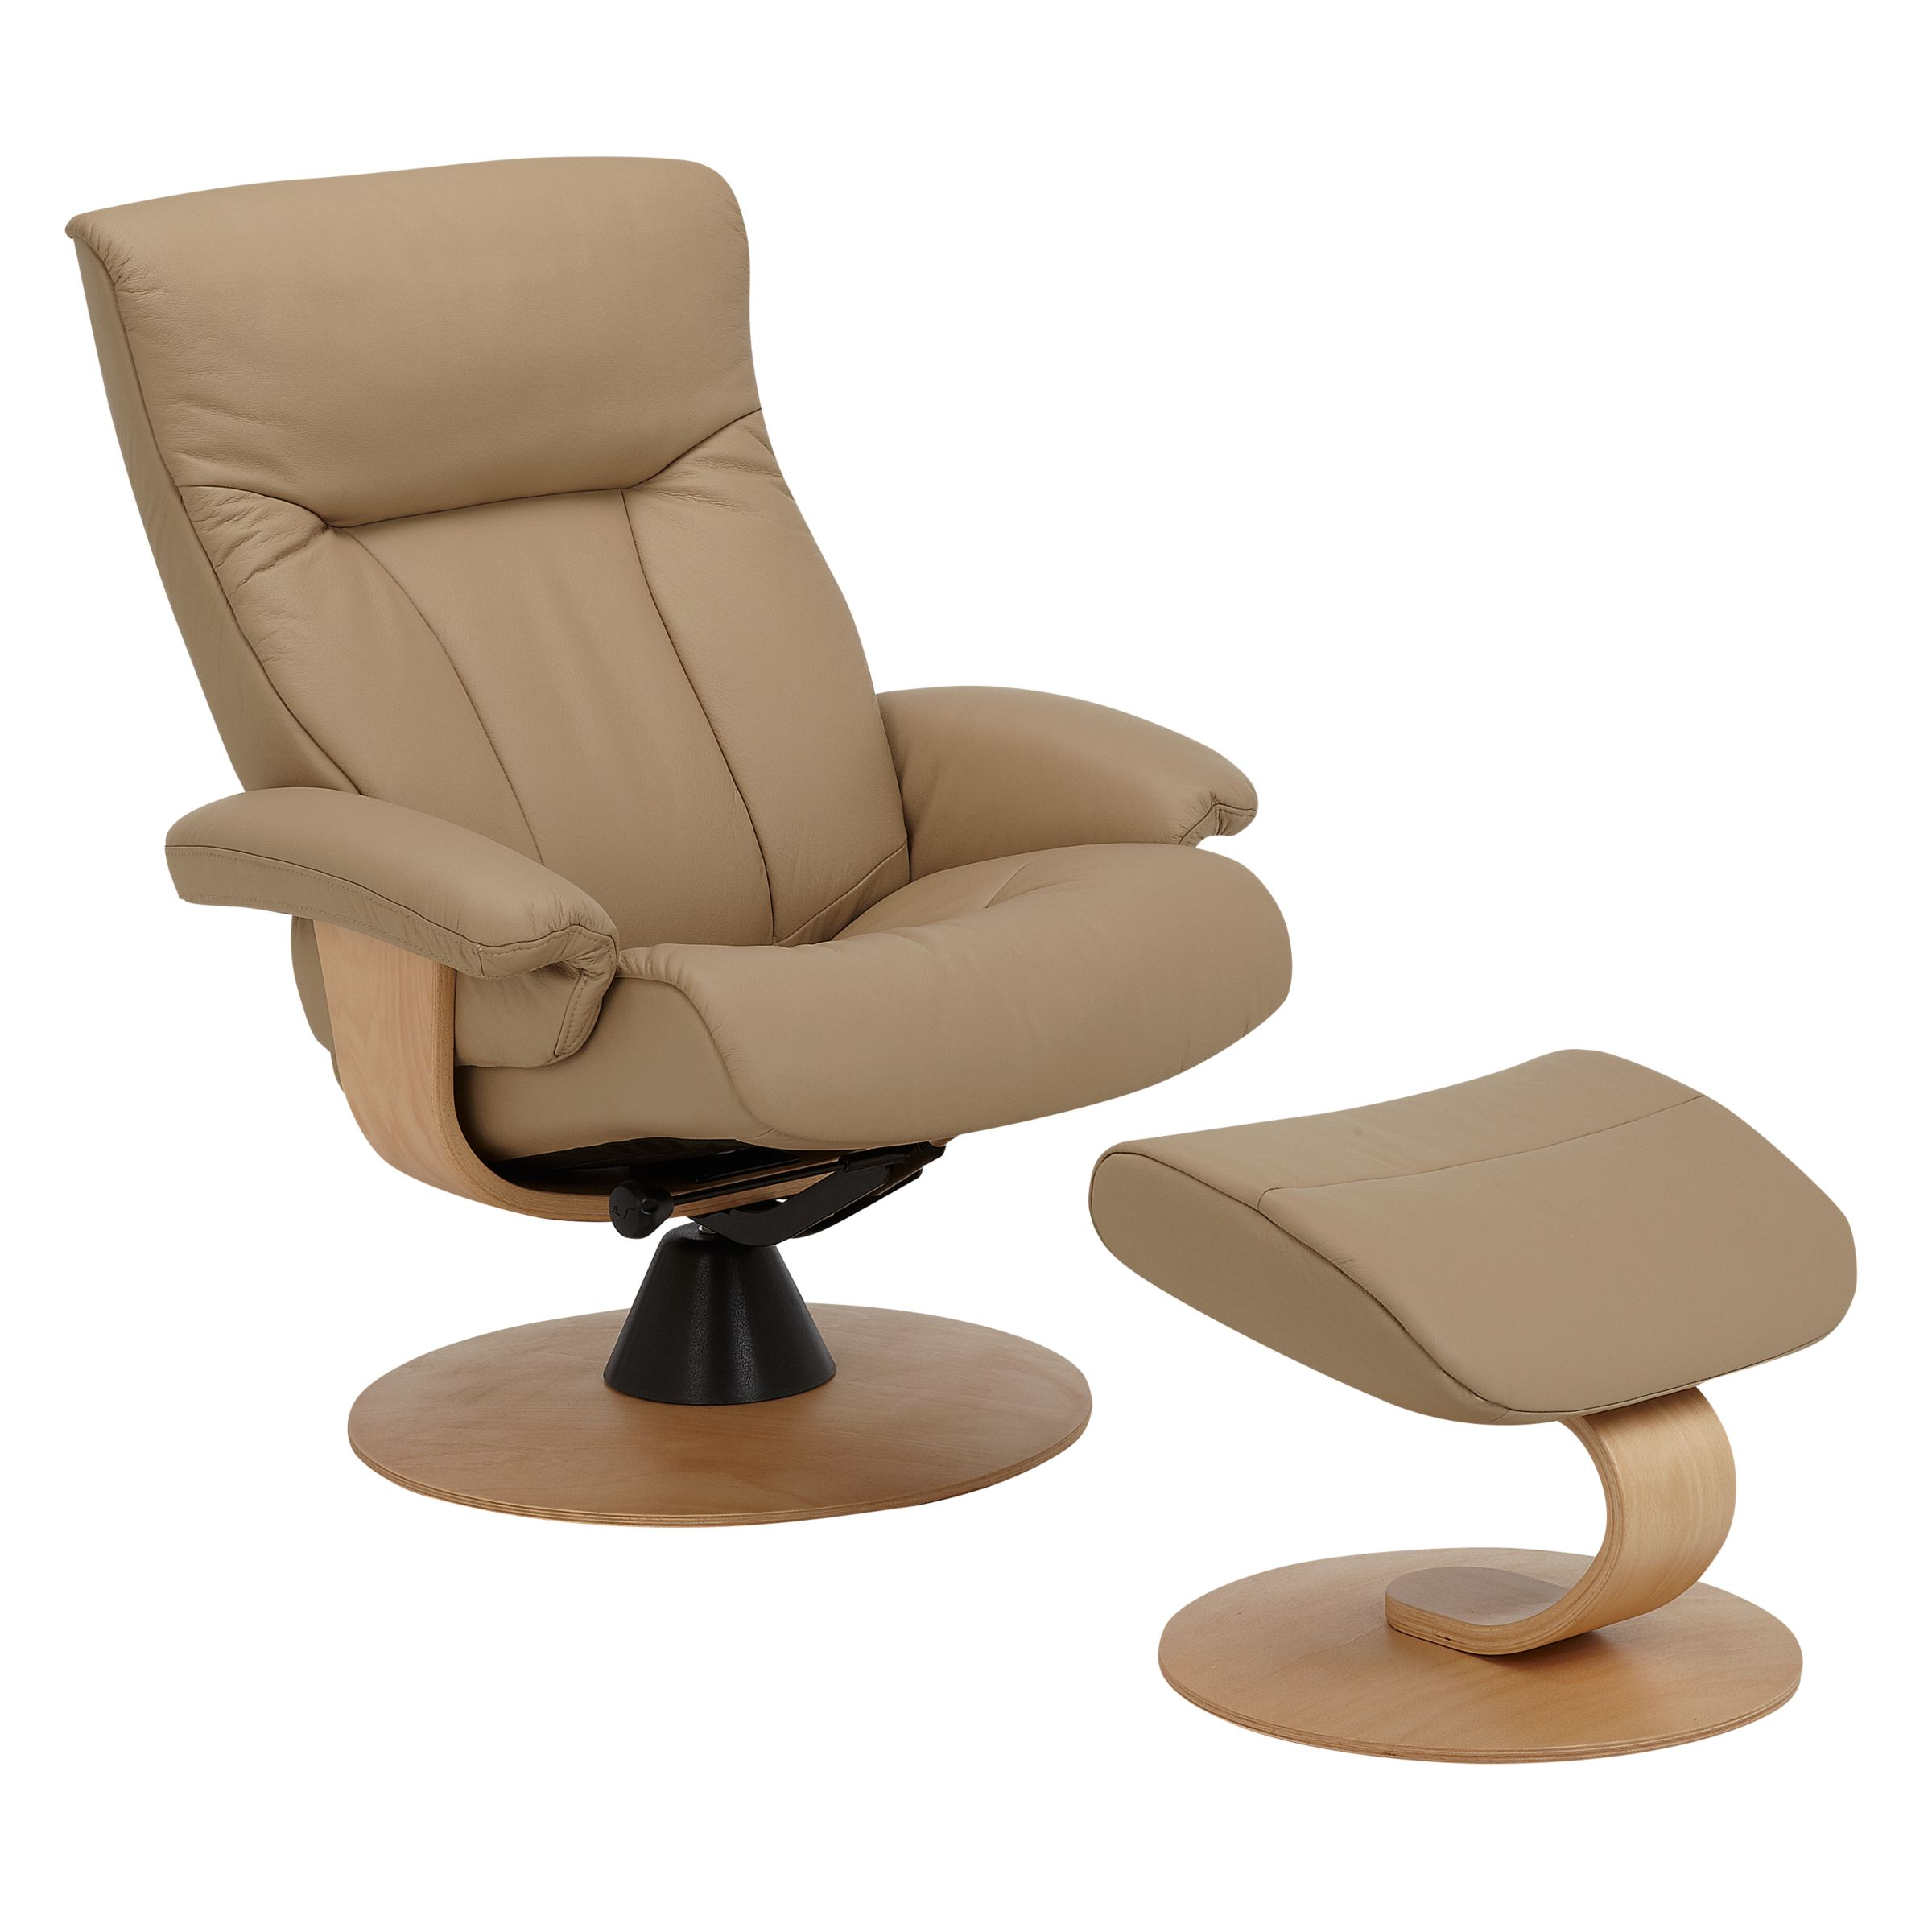 John Lewis Tessin Swivel Recliner Chair Sandel Natural